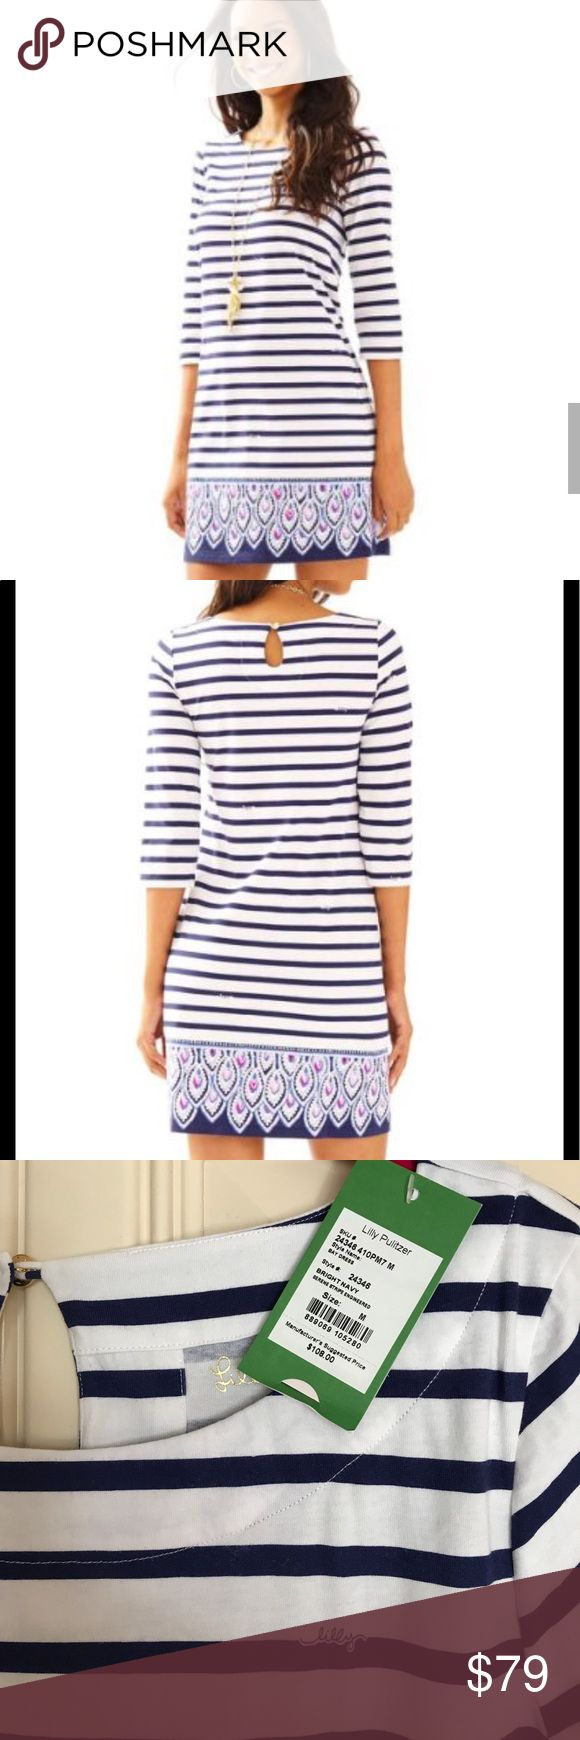 LILLY PULITZER 💙NWT💙Bay Dress-Bright Navy Stripe Print is Serene Stripe Engineered.  Soft and comfy!  Great details.  No weird coloring like the (not good) photo-- it's white!! Lilly Pulitzer Dresses